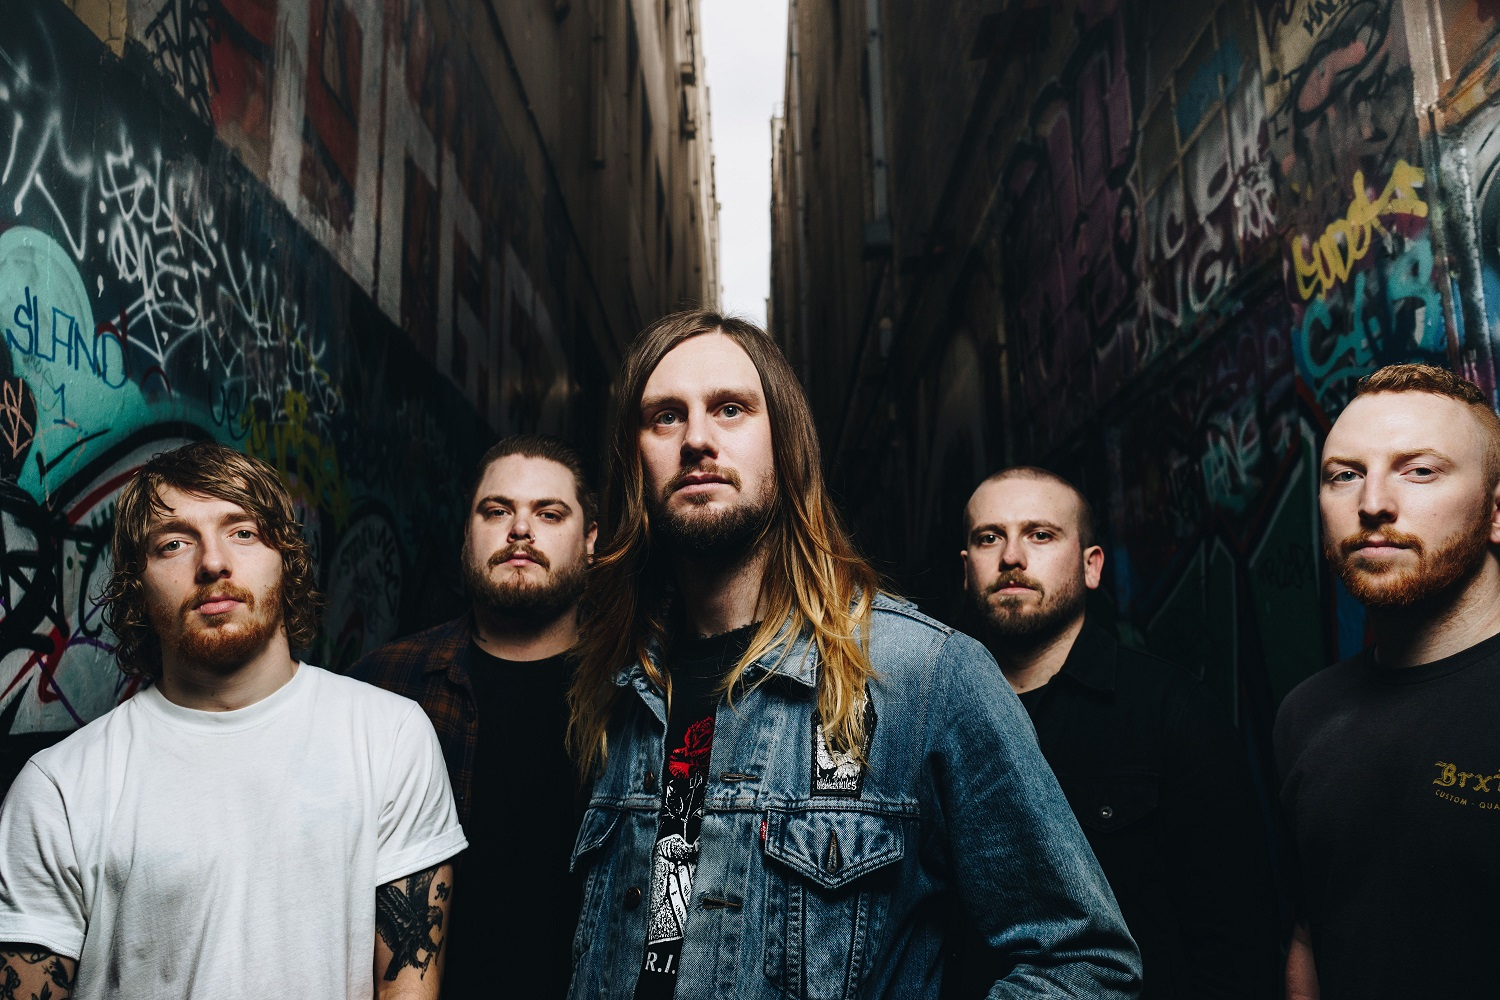 Artist of the day 24/04: While She Sleeps